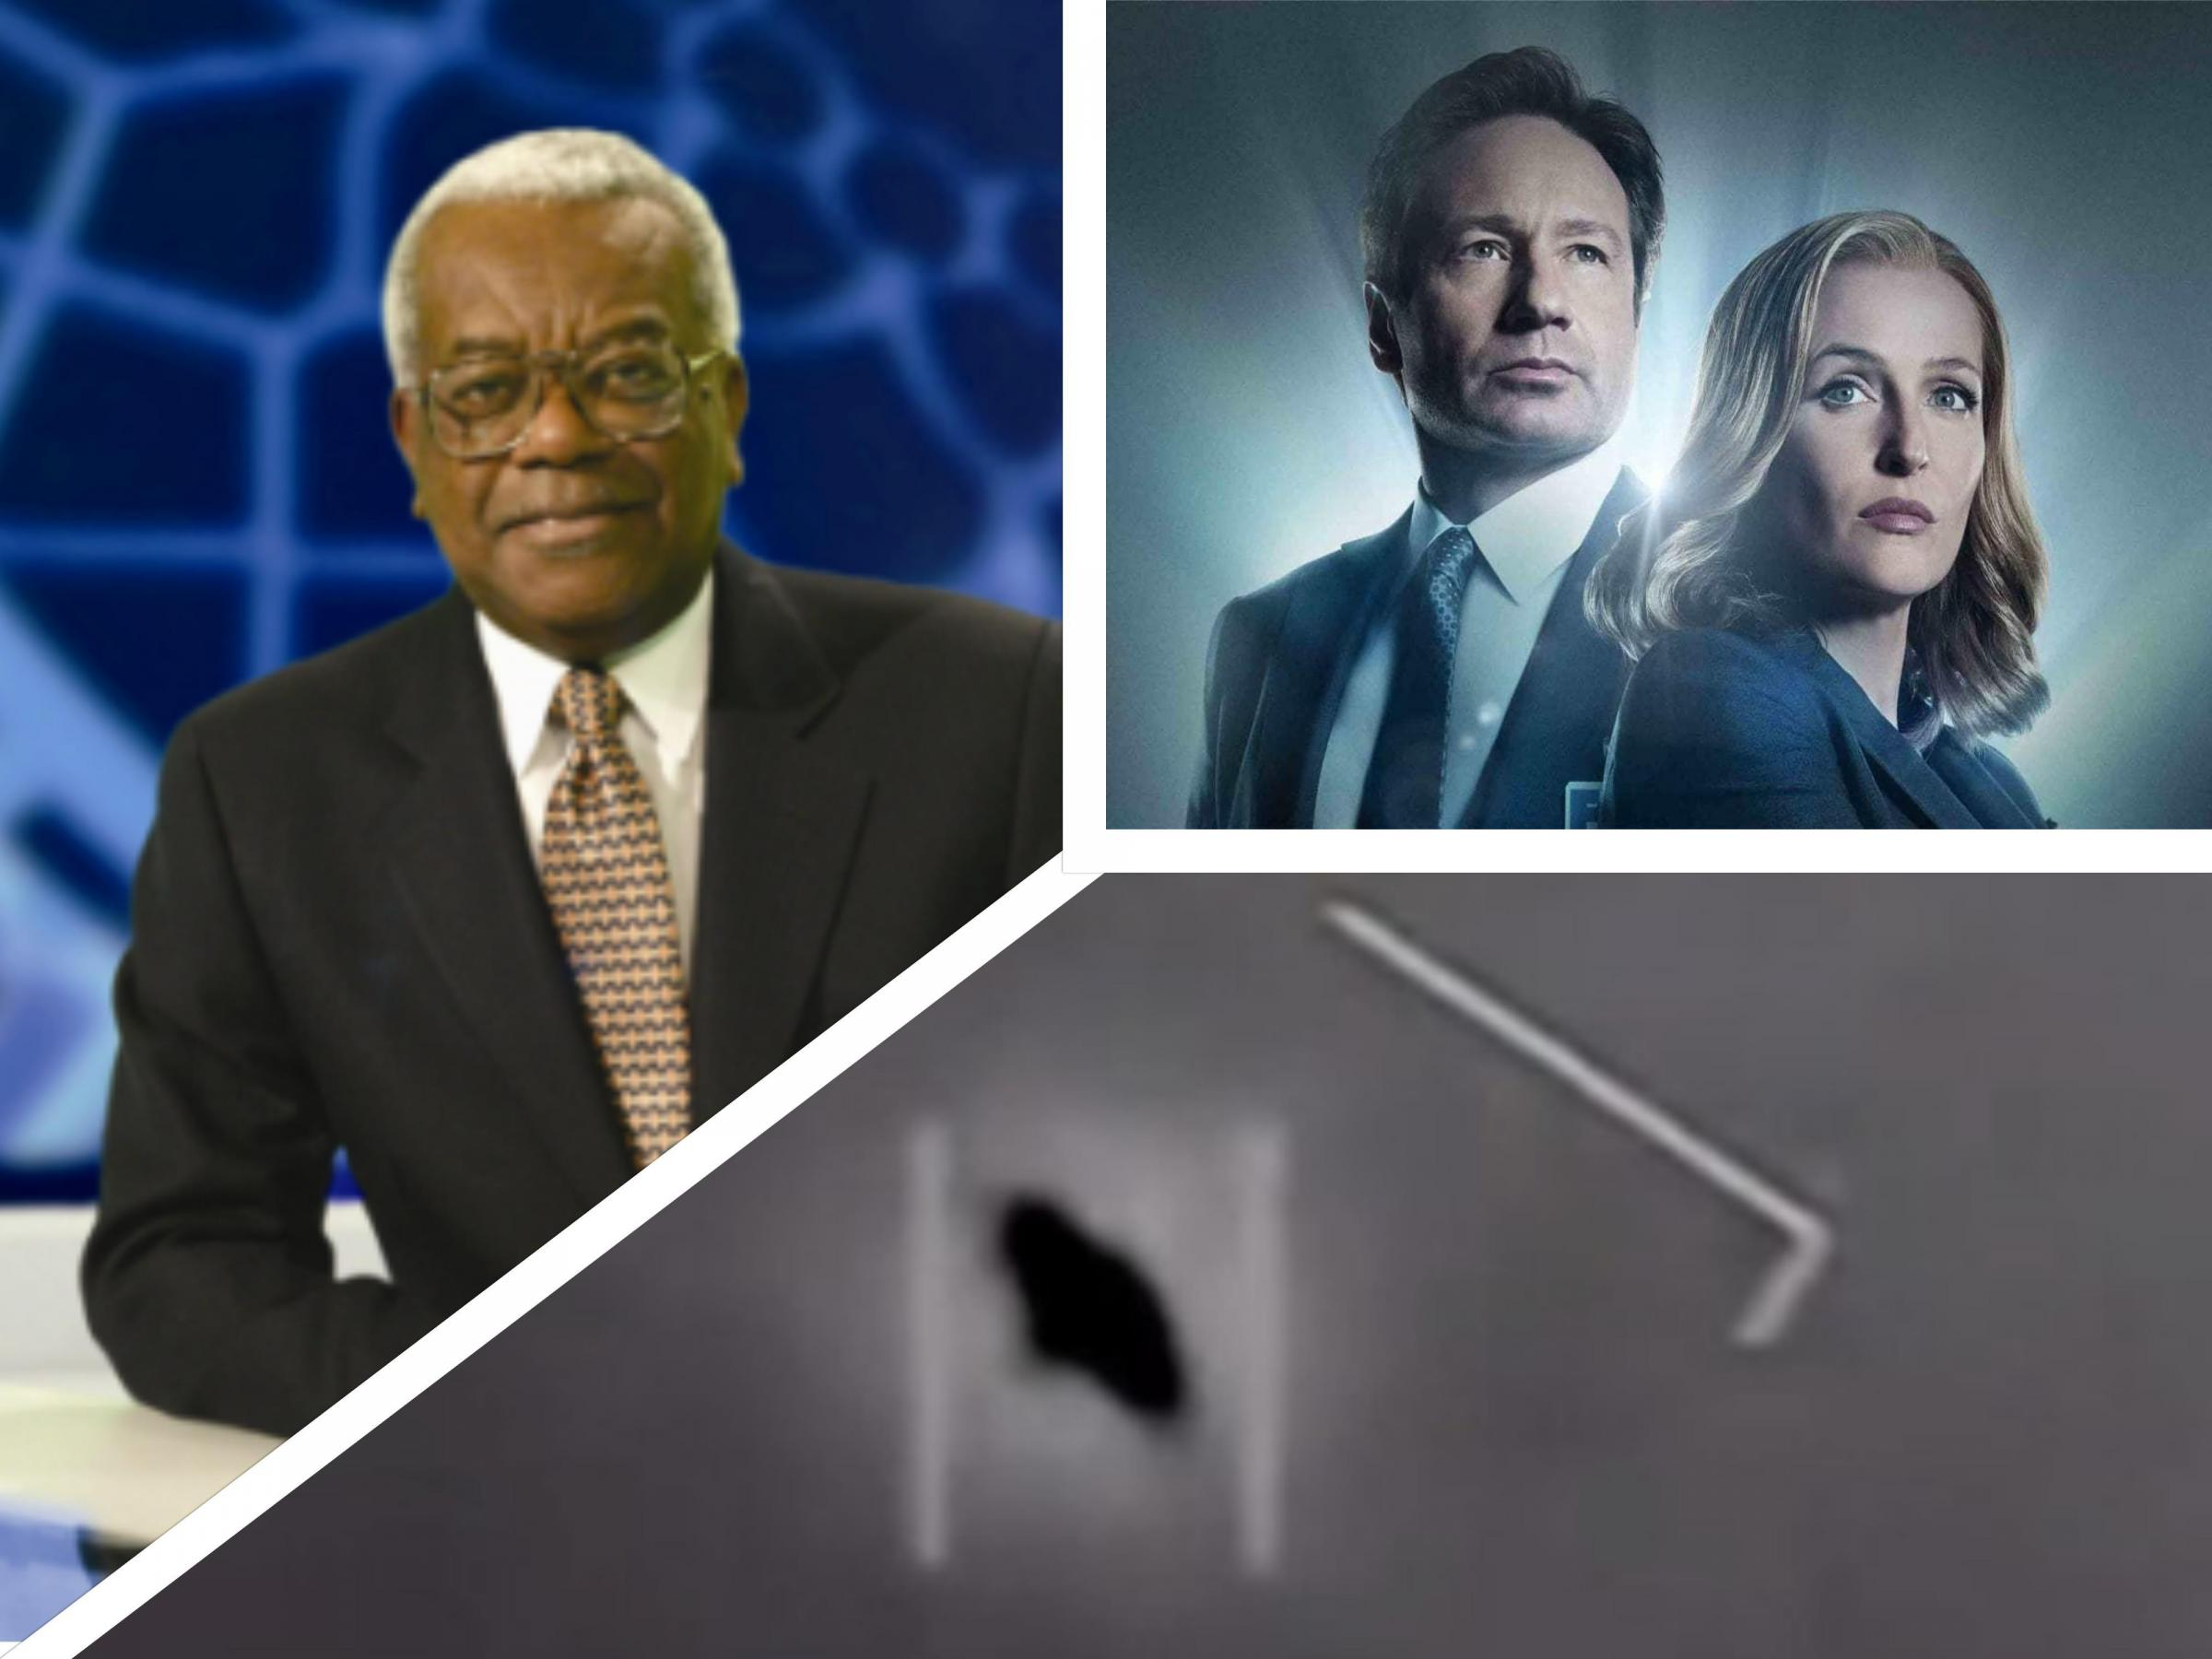 Perhaps Sir Trevor McDonald was simply overcome with X-Files fever like the rest of the nation in 1994 when he stated that UFOs were a reality. But has the Pentagon now proven him right? Science and technology with Bill Bain